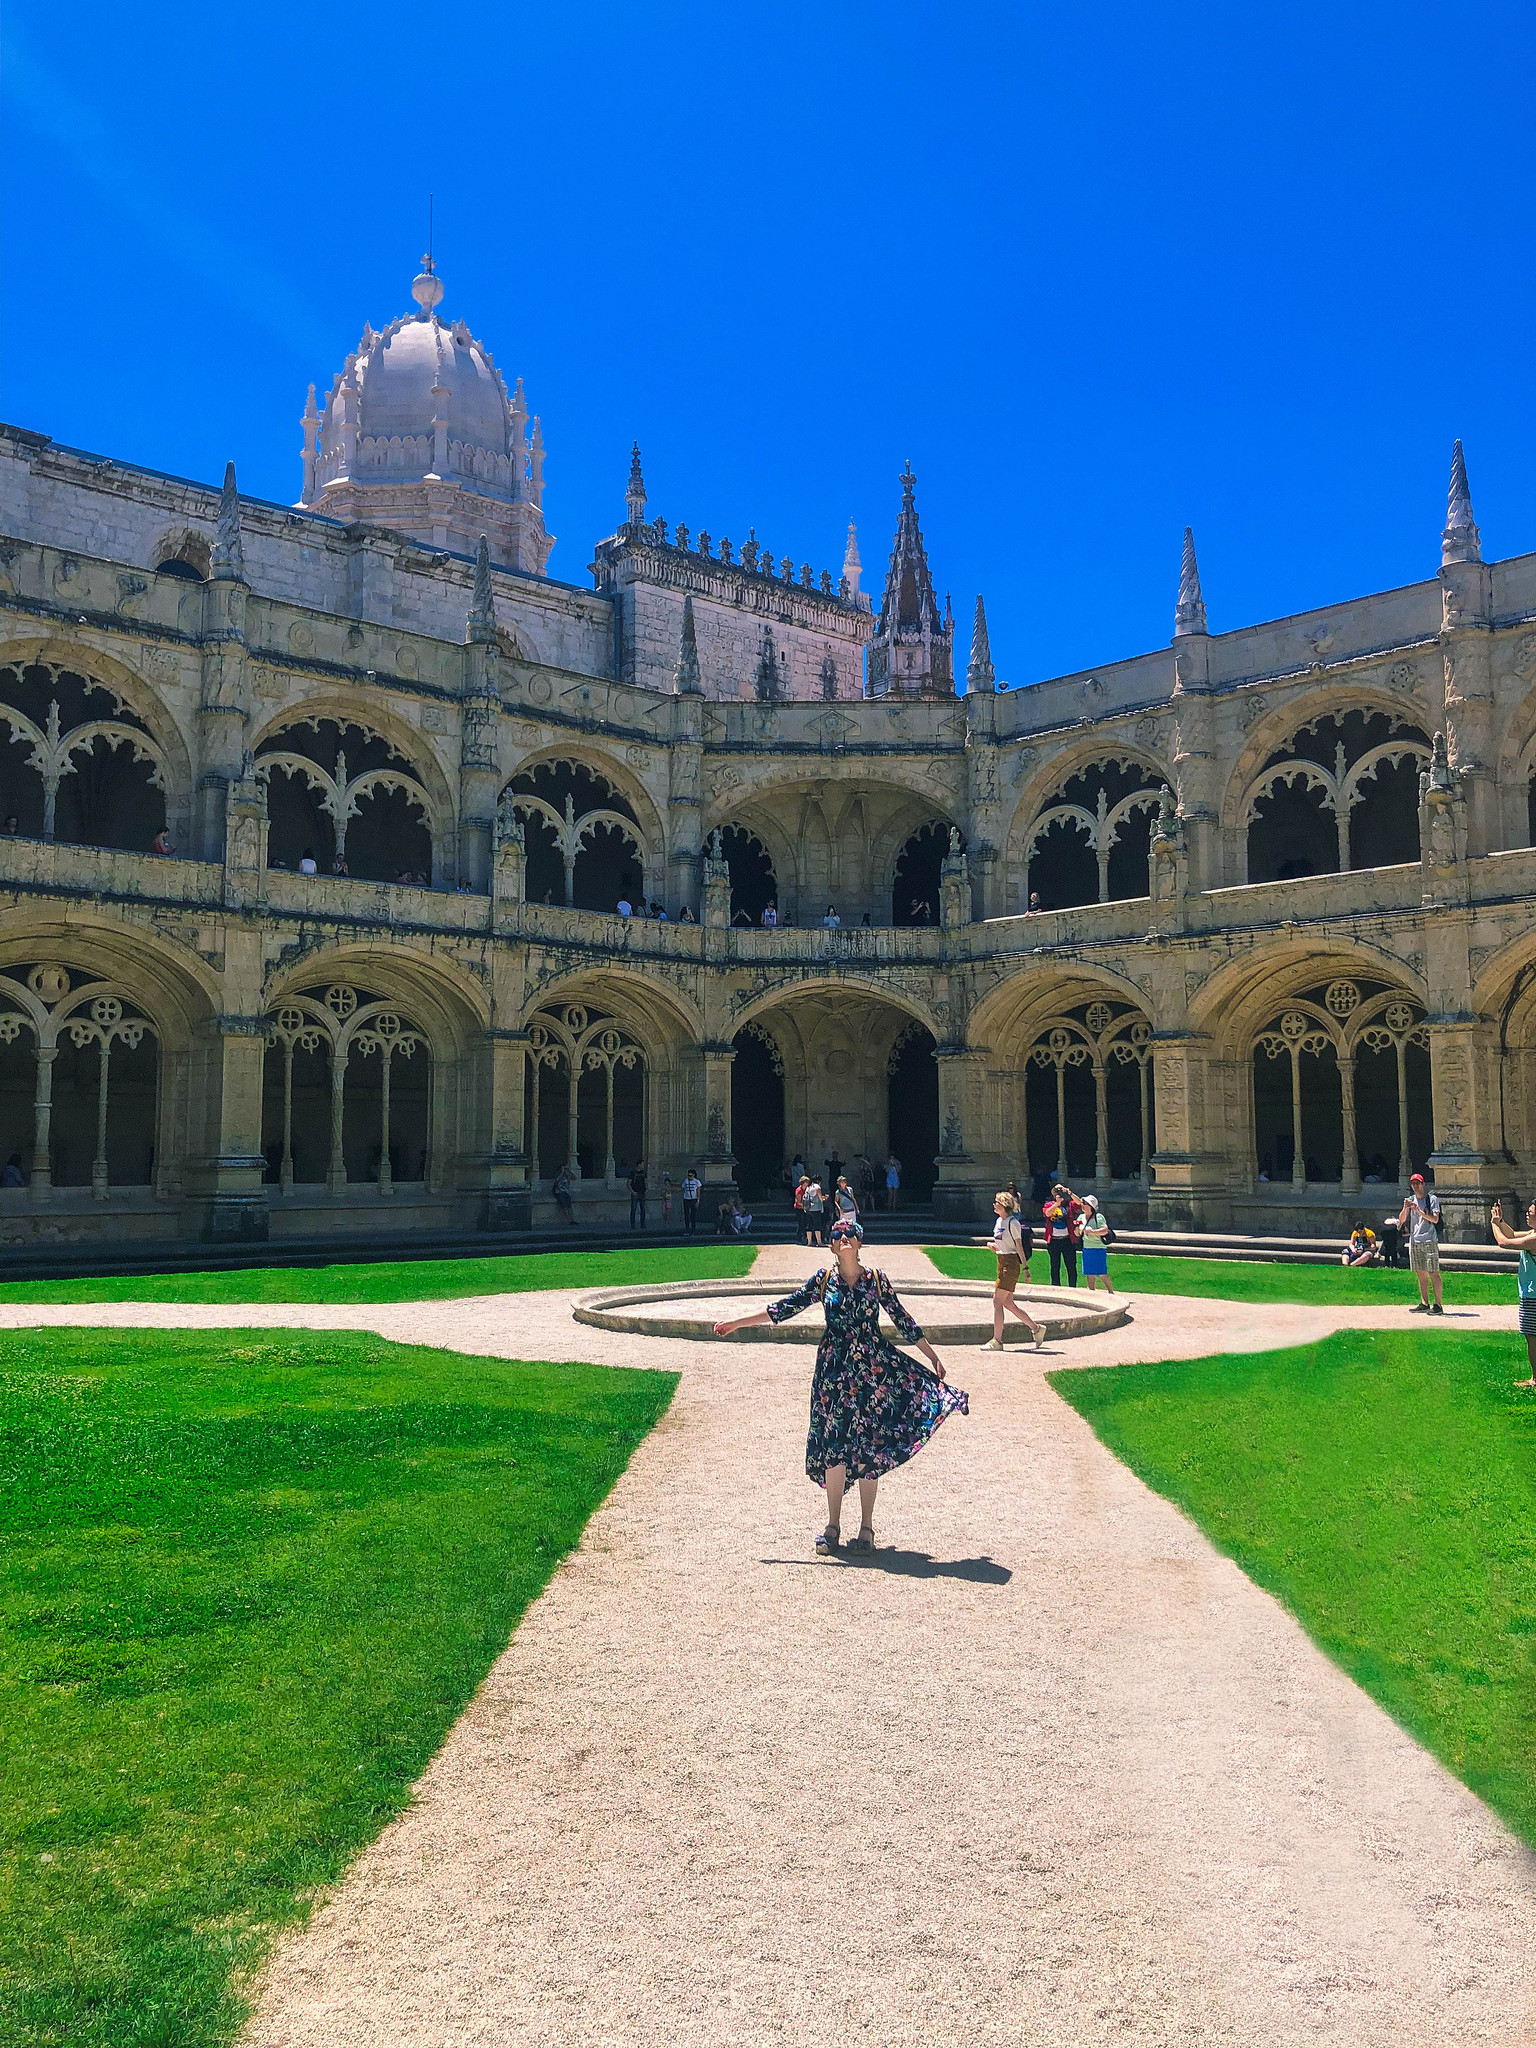 The Ultimate Lisbon Photography Guide: 18 Incredible Instagrammable Places You Must-See